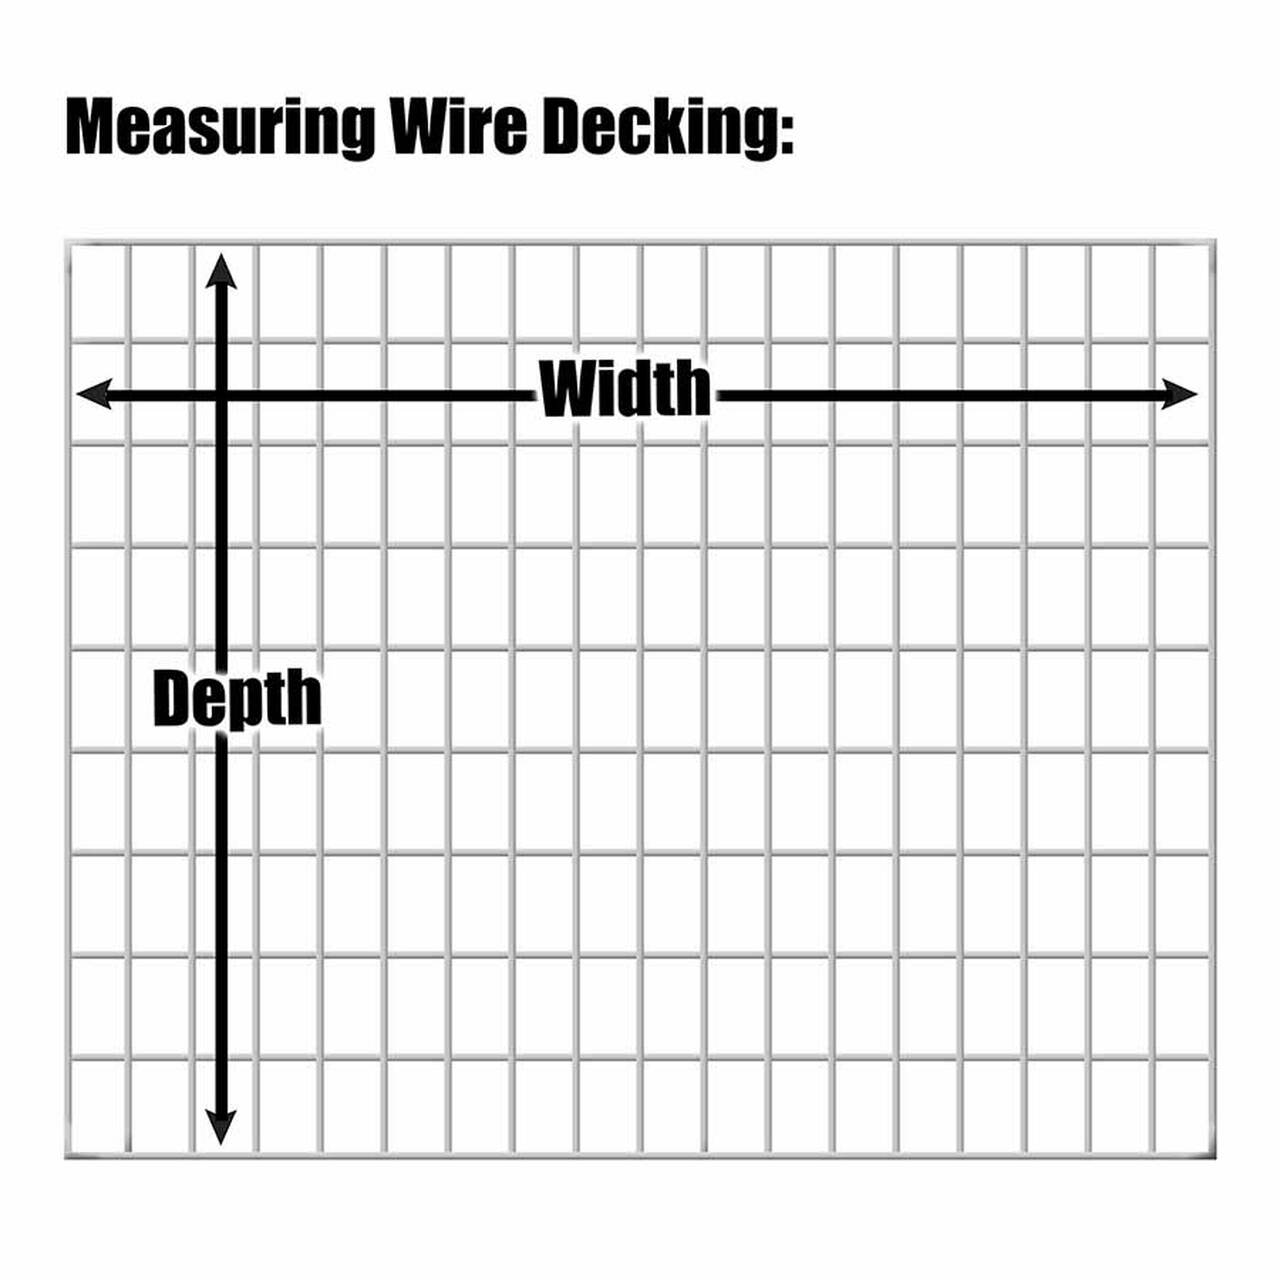 How to measure wire decking for pallet racking